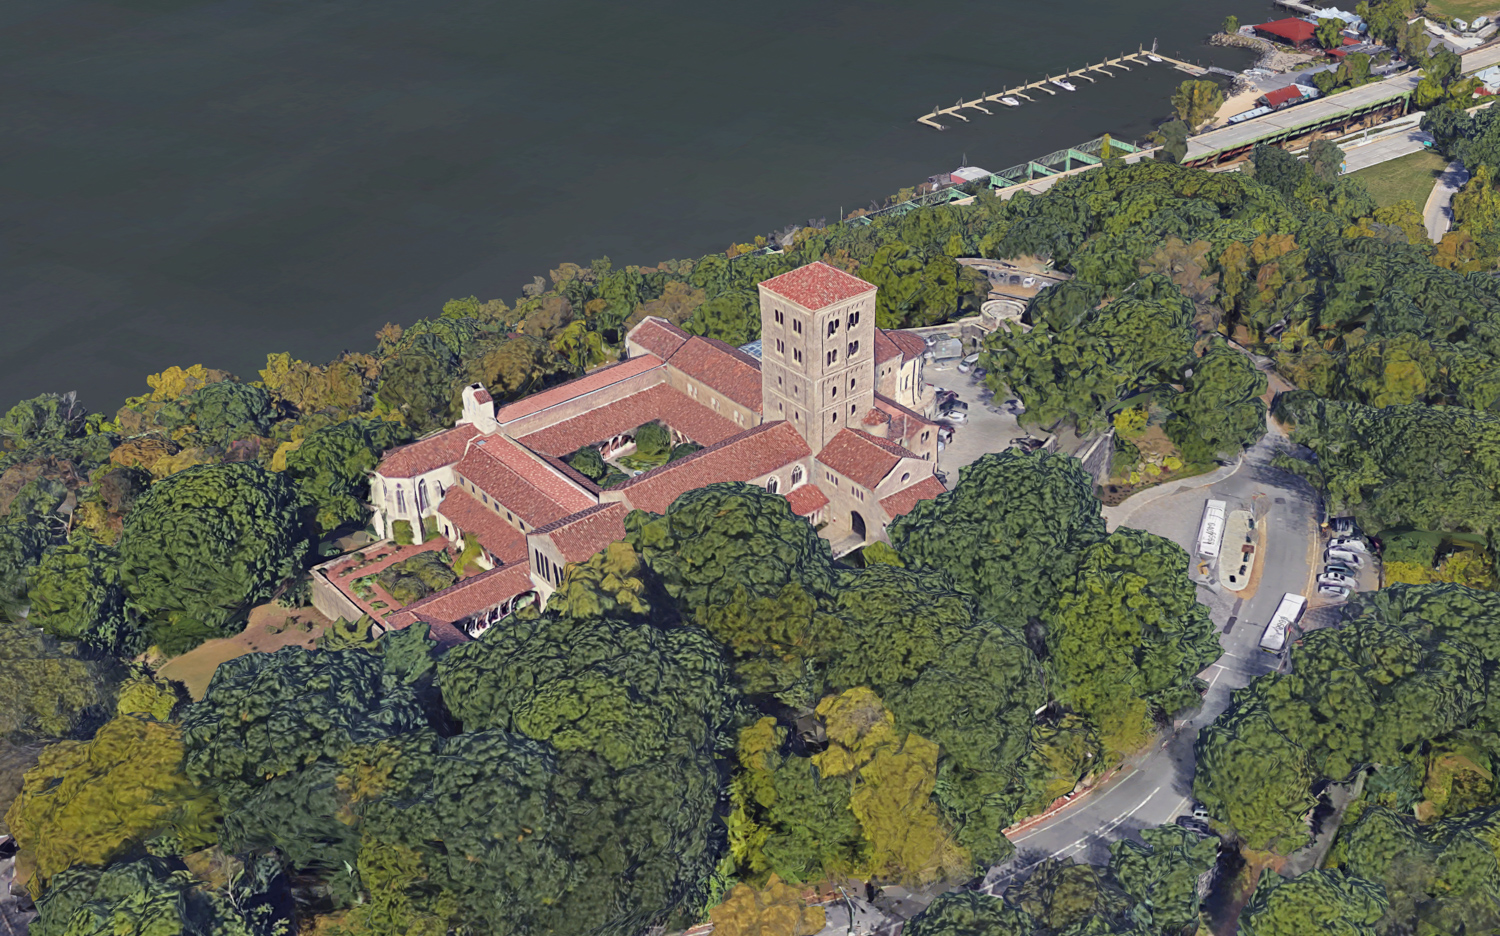 The Cloisters Museum, via Google Maps